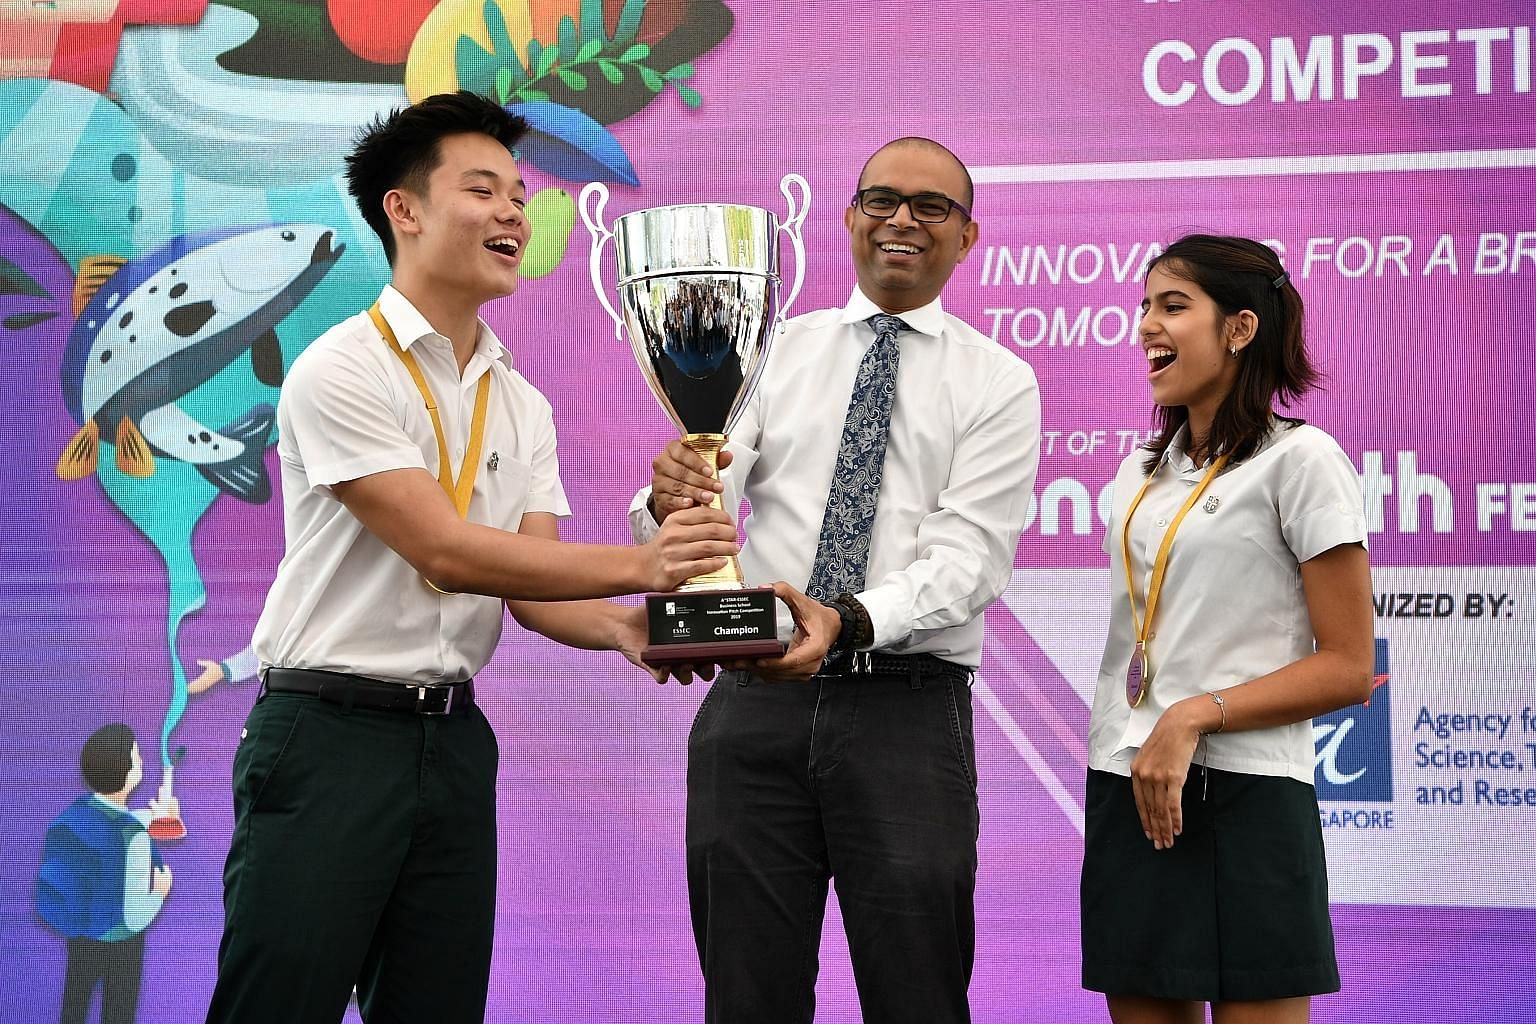 Dr Janil Puthucheary, Senior Minister of State for Transport and Communications and Information, presenting the trophy yesterday to Mr Kyle Tan and Ms Tara Kripalani from the St Joseph's Institution International team which clinched first place in th